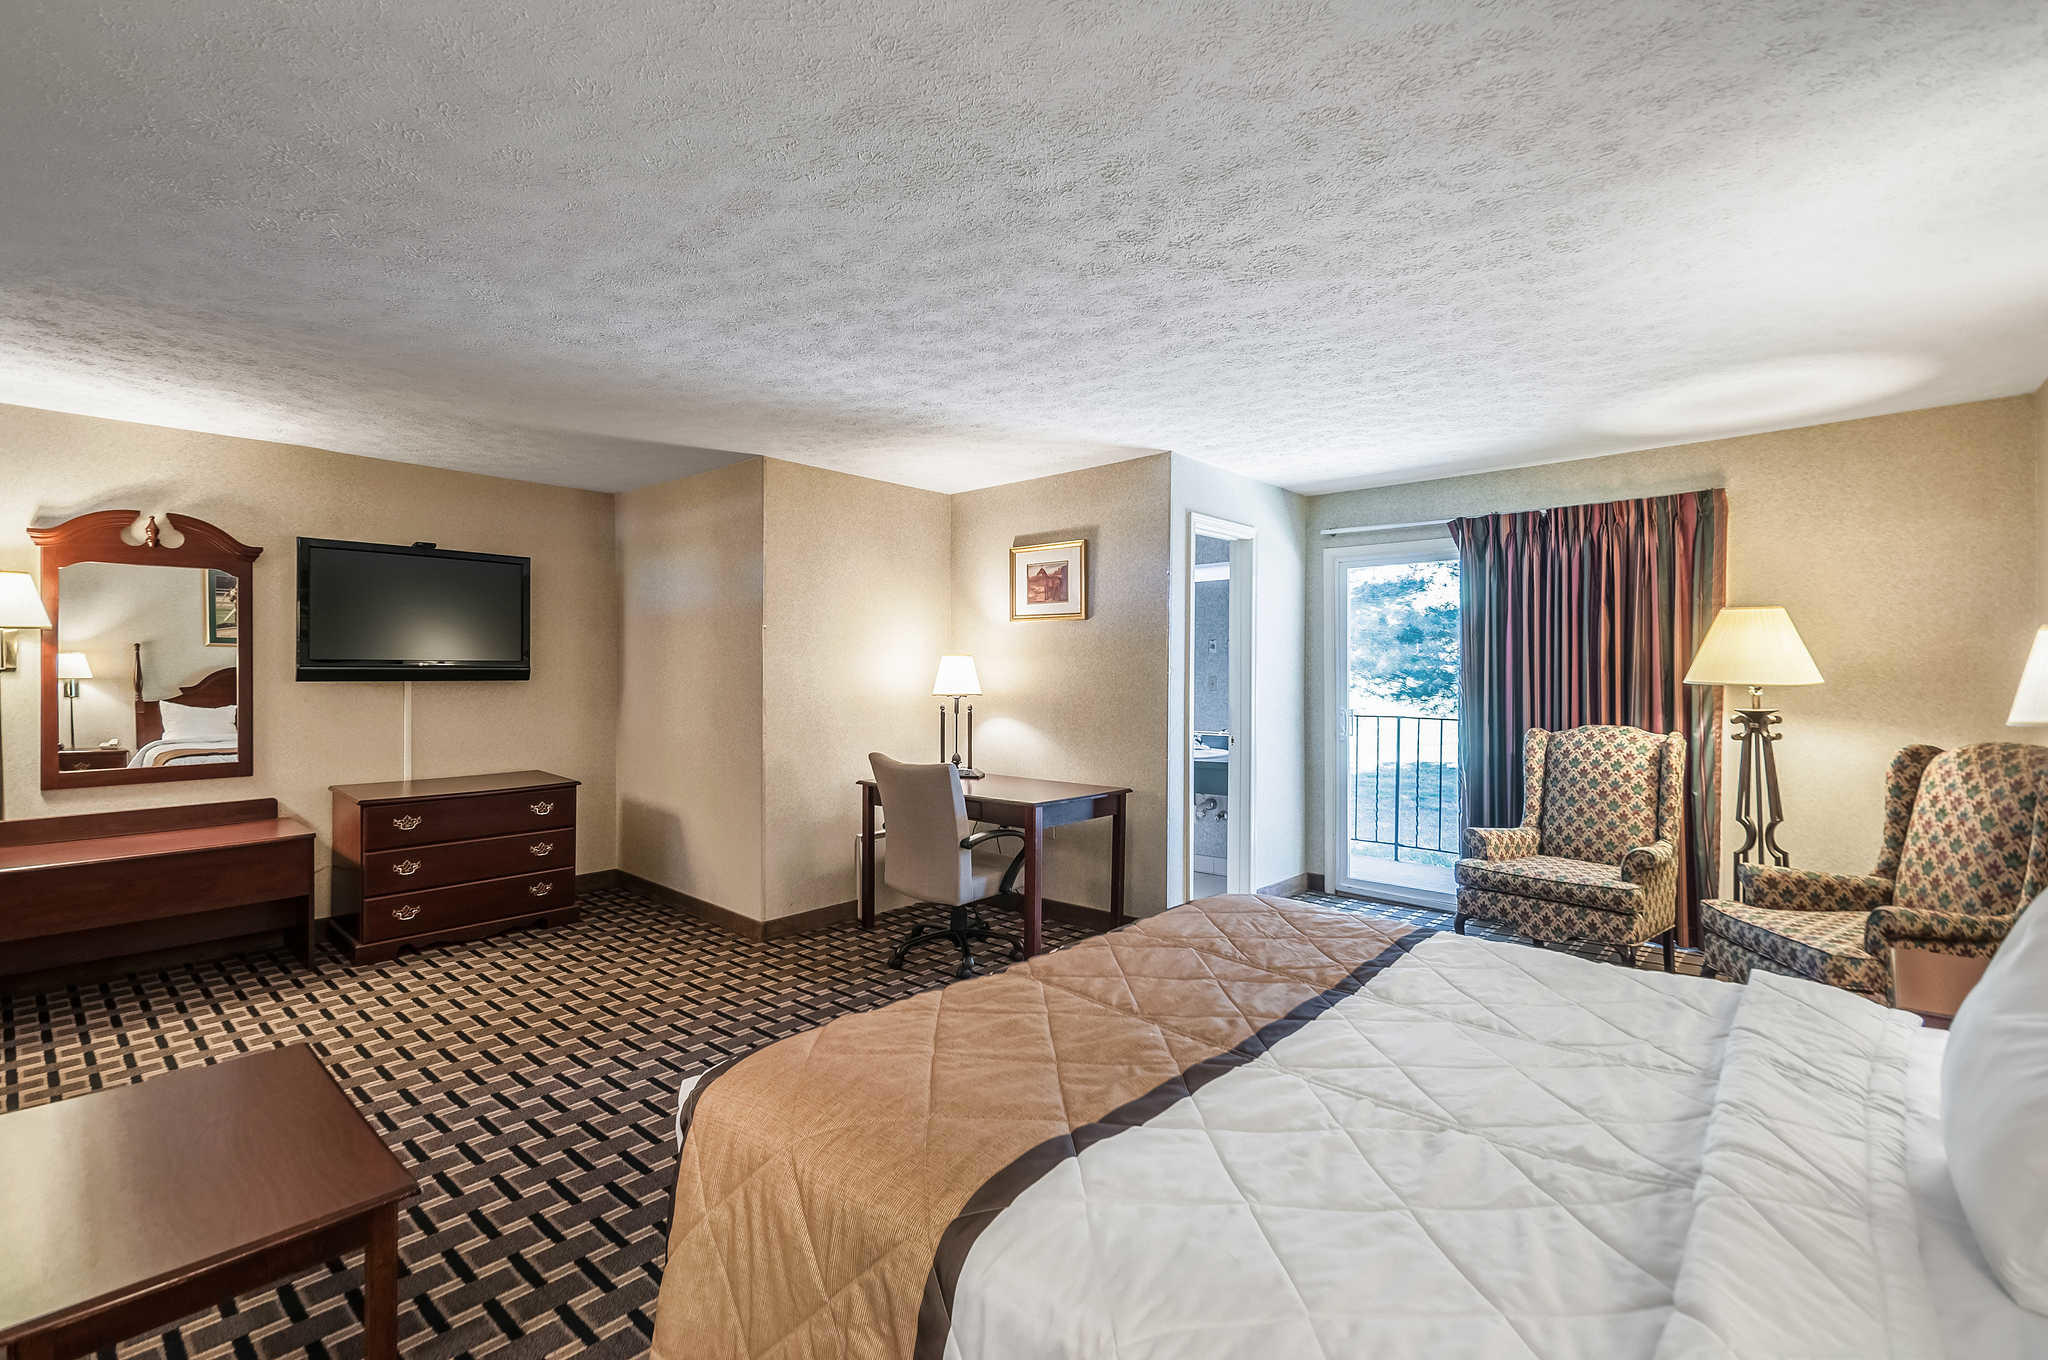 sofa farmers market san jose cheers living room furniture rodeway inn and suites coupons near me in charles town